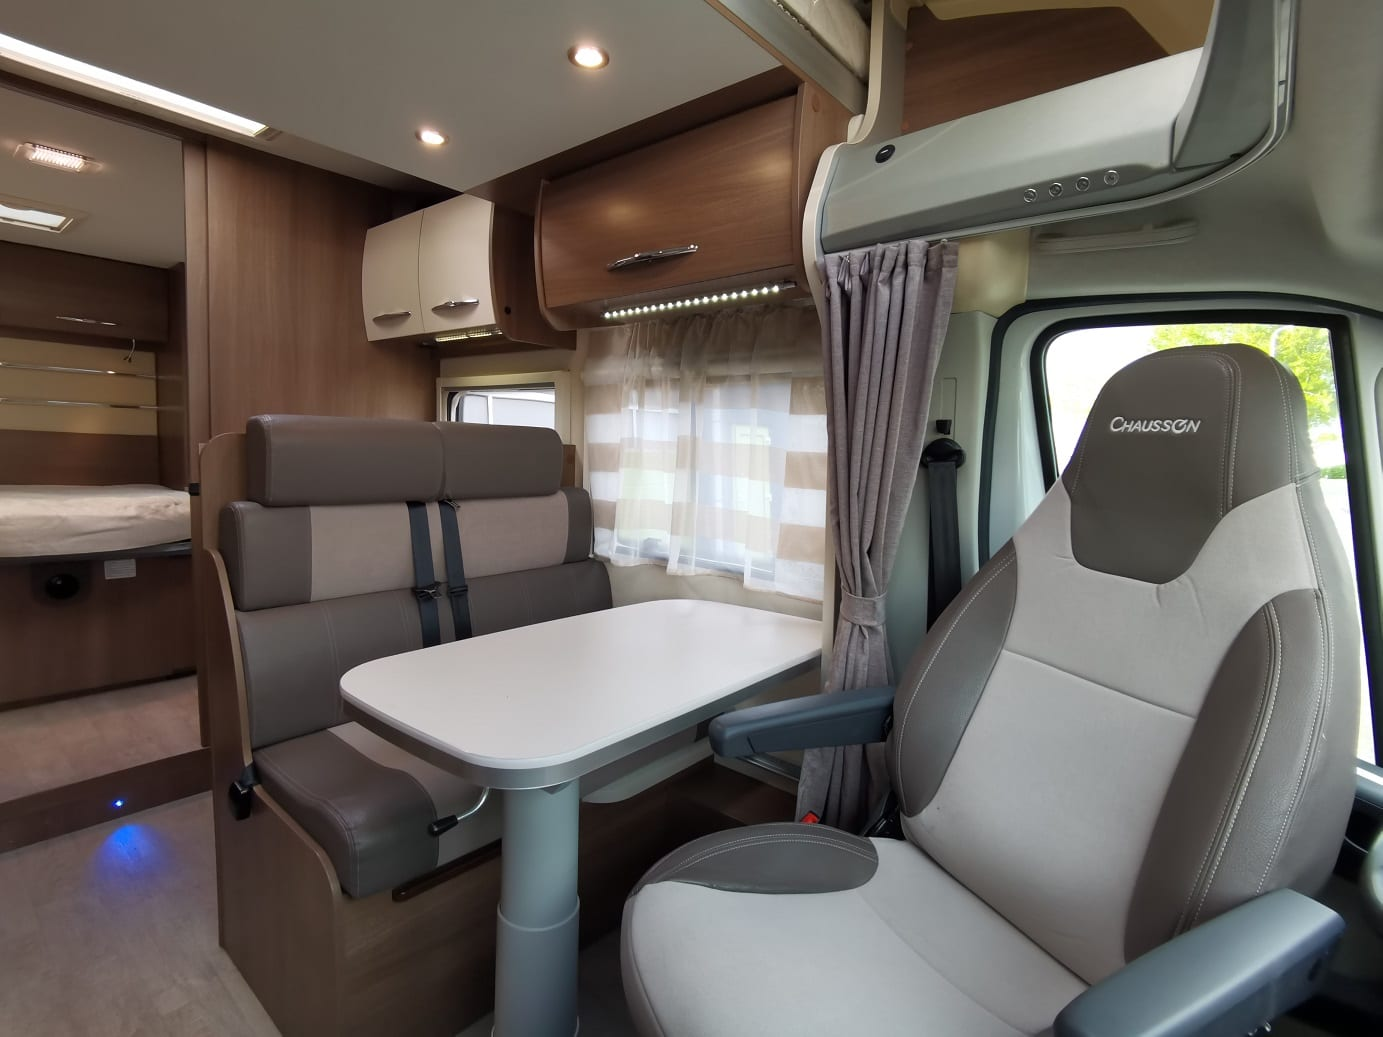 Chausson 628 Queensbed